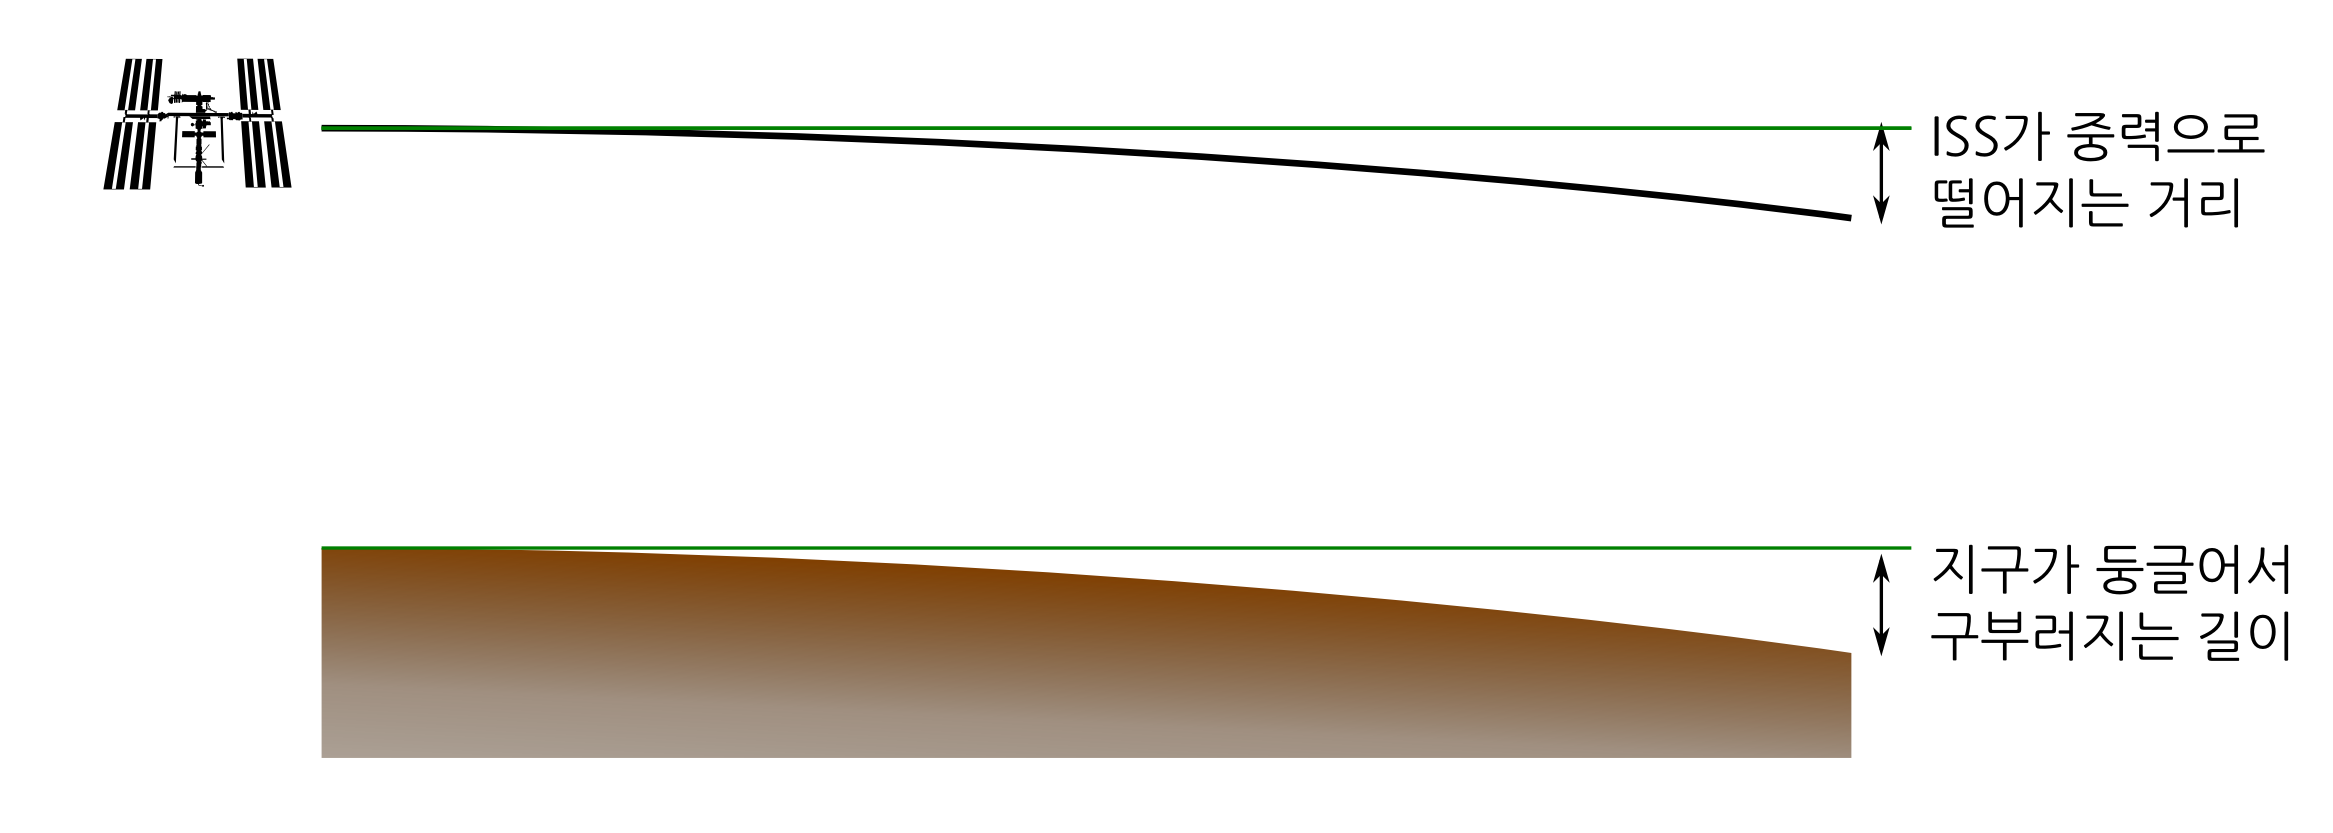 fig2.png